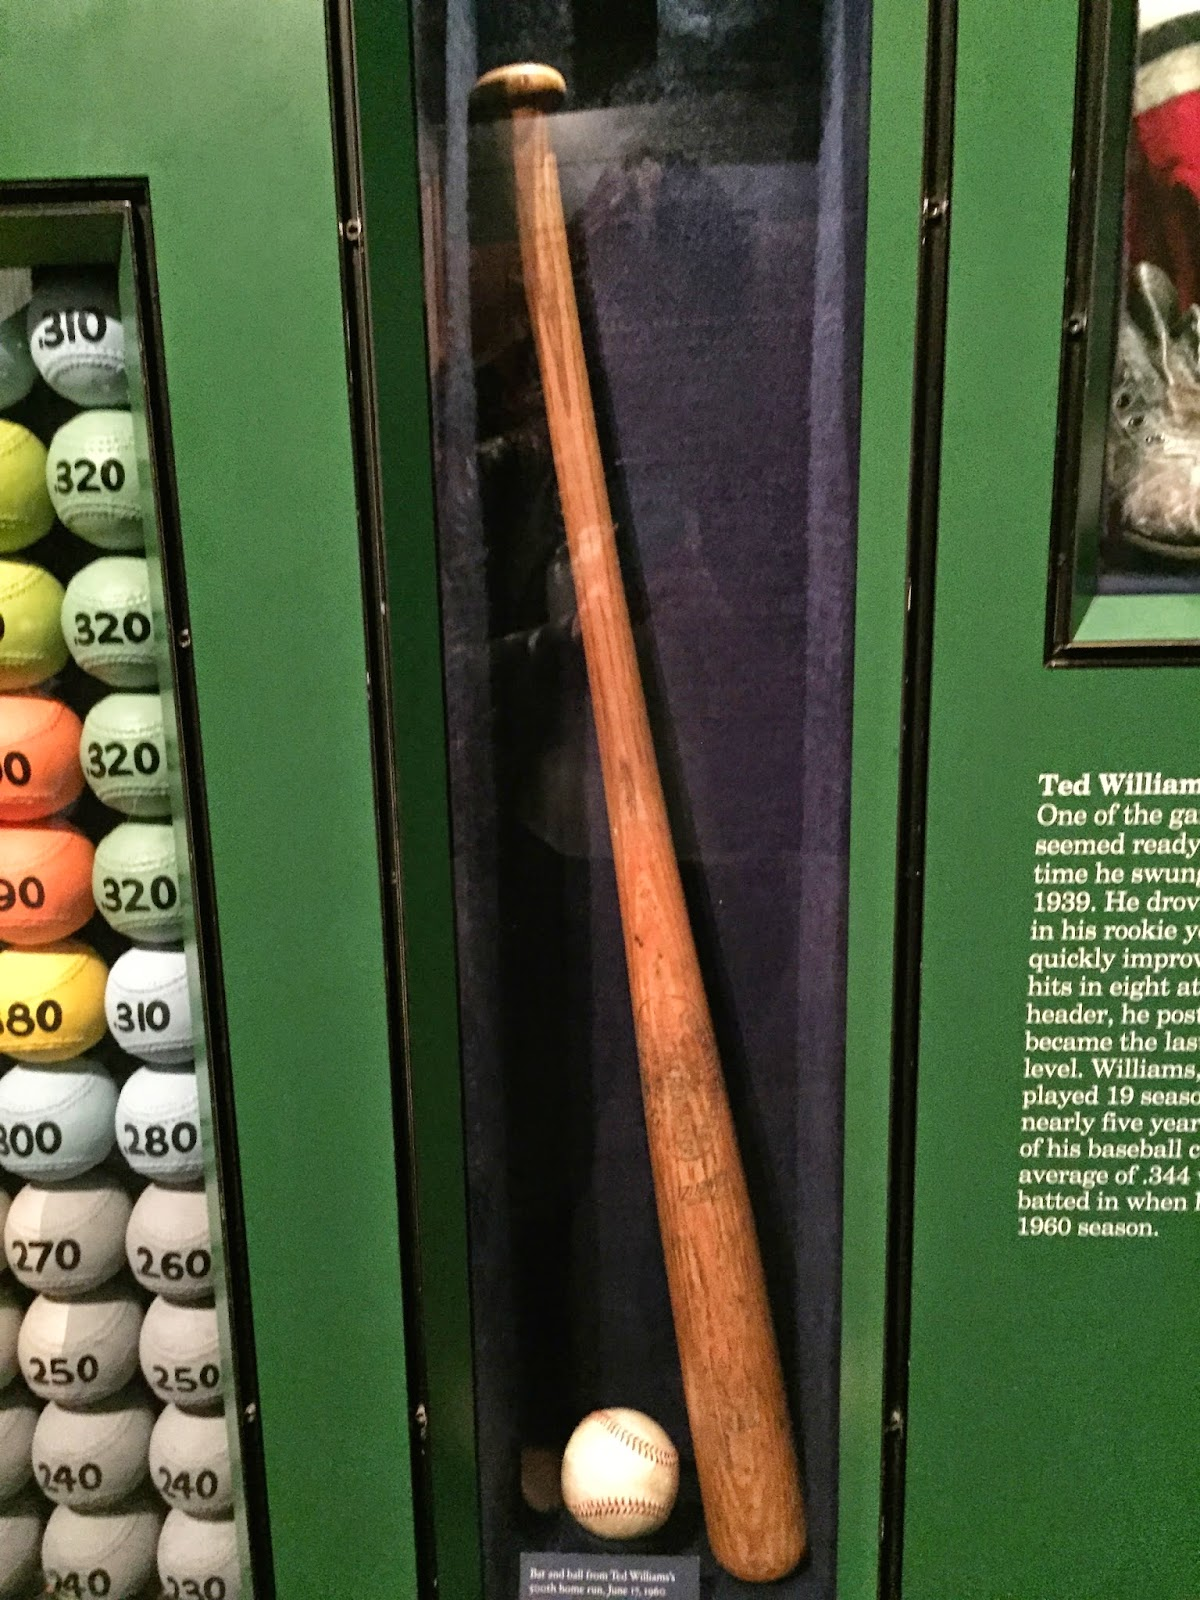 Ted Williams Bat and ball, Hall of Fame